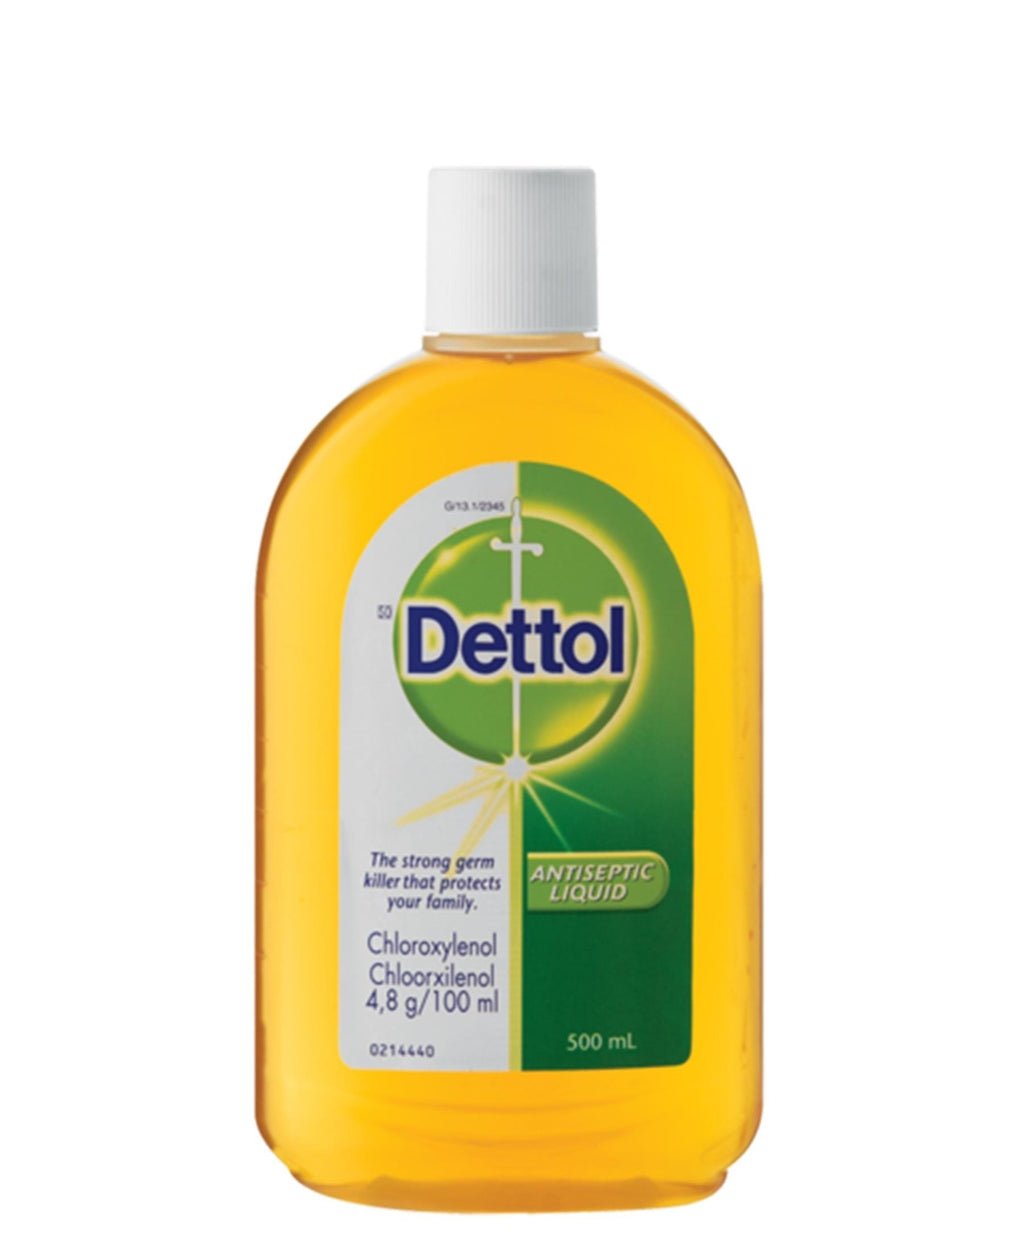 Dettol Antiseptic Liquid 500ml - Green